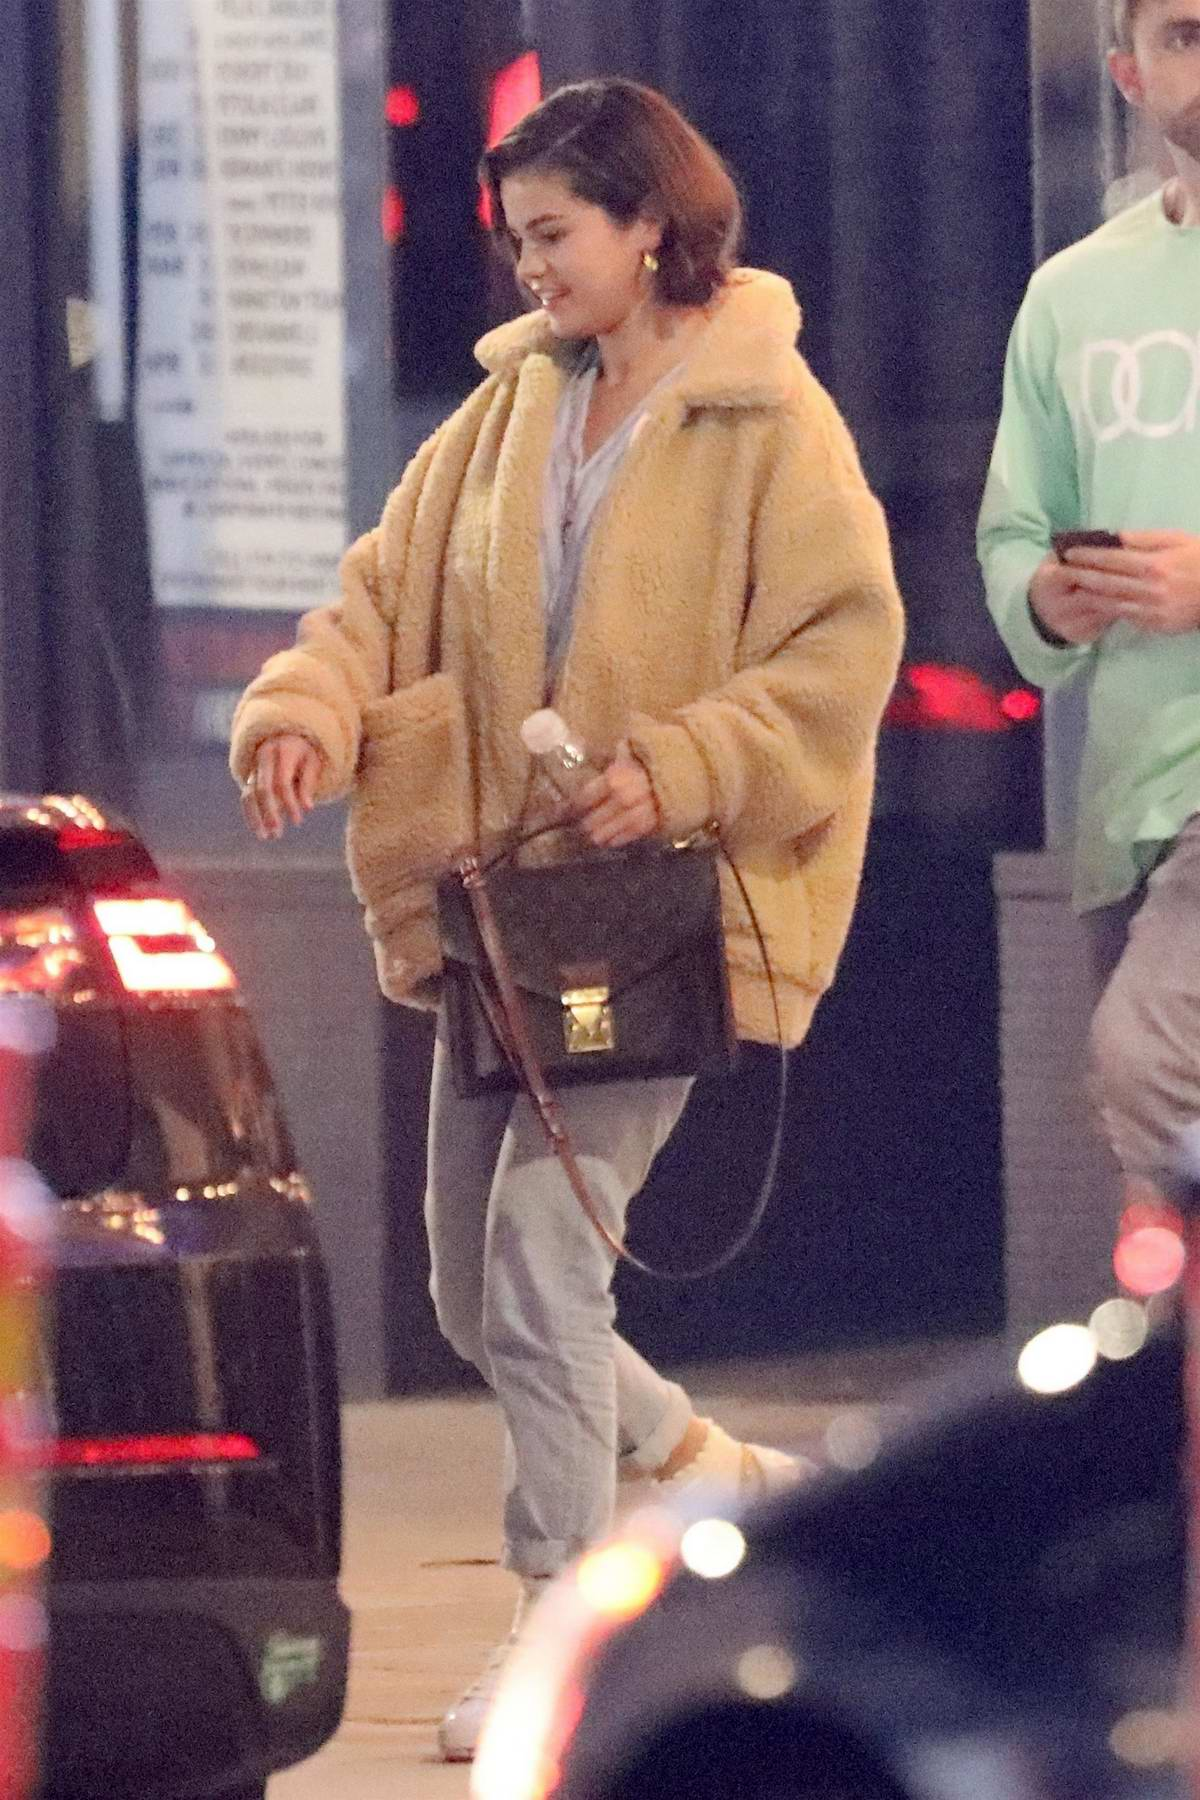 Selena Gomez spotted in a beige Sherpa jacket as she attends church service in Beverly Hills, Los Angeles